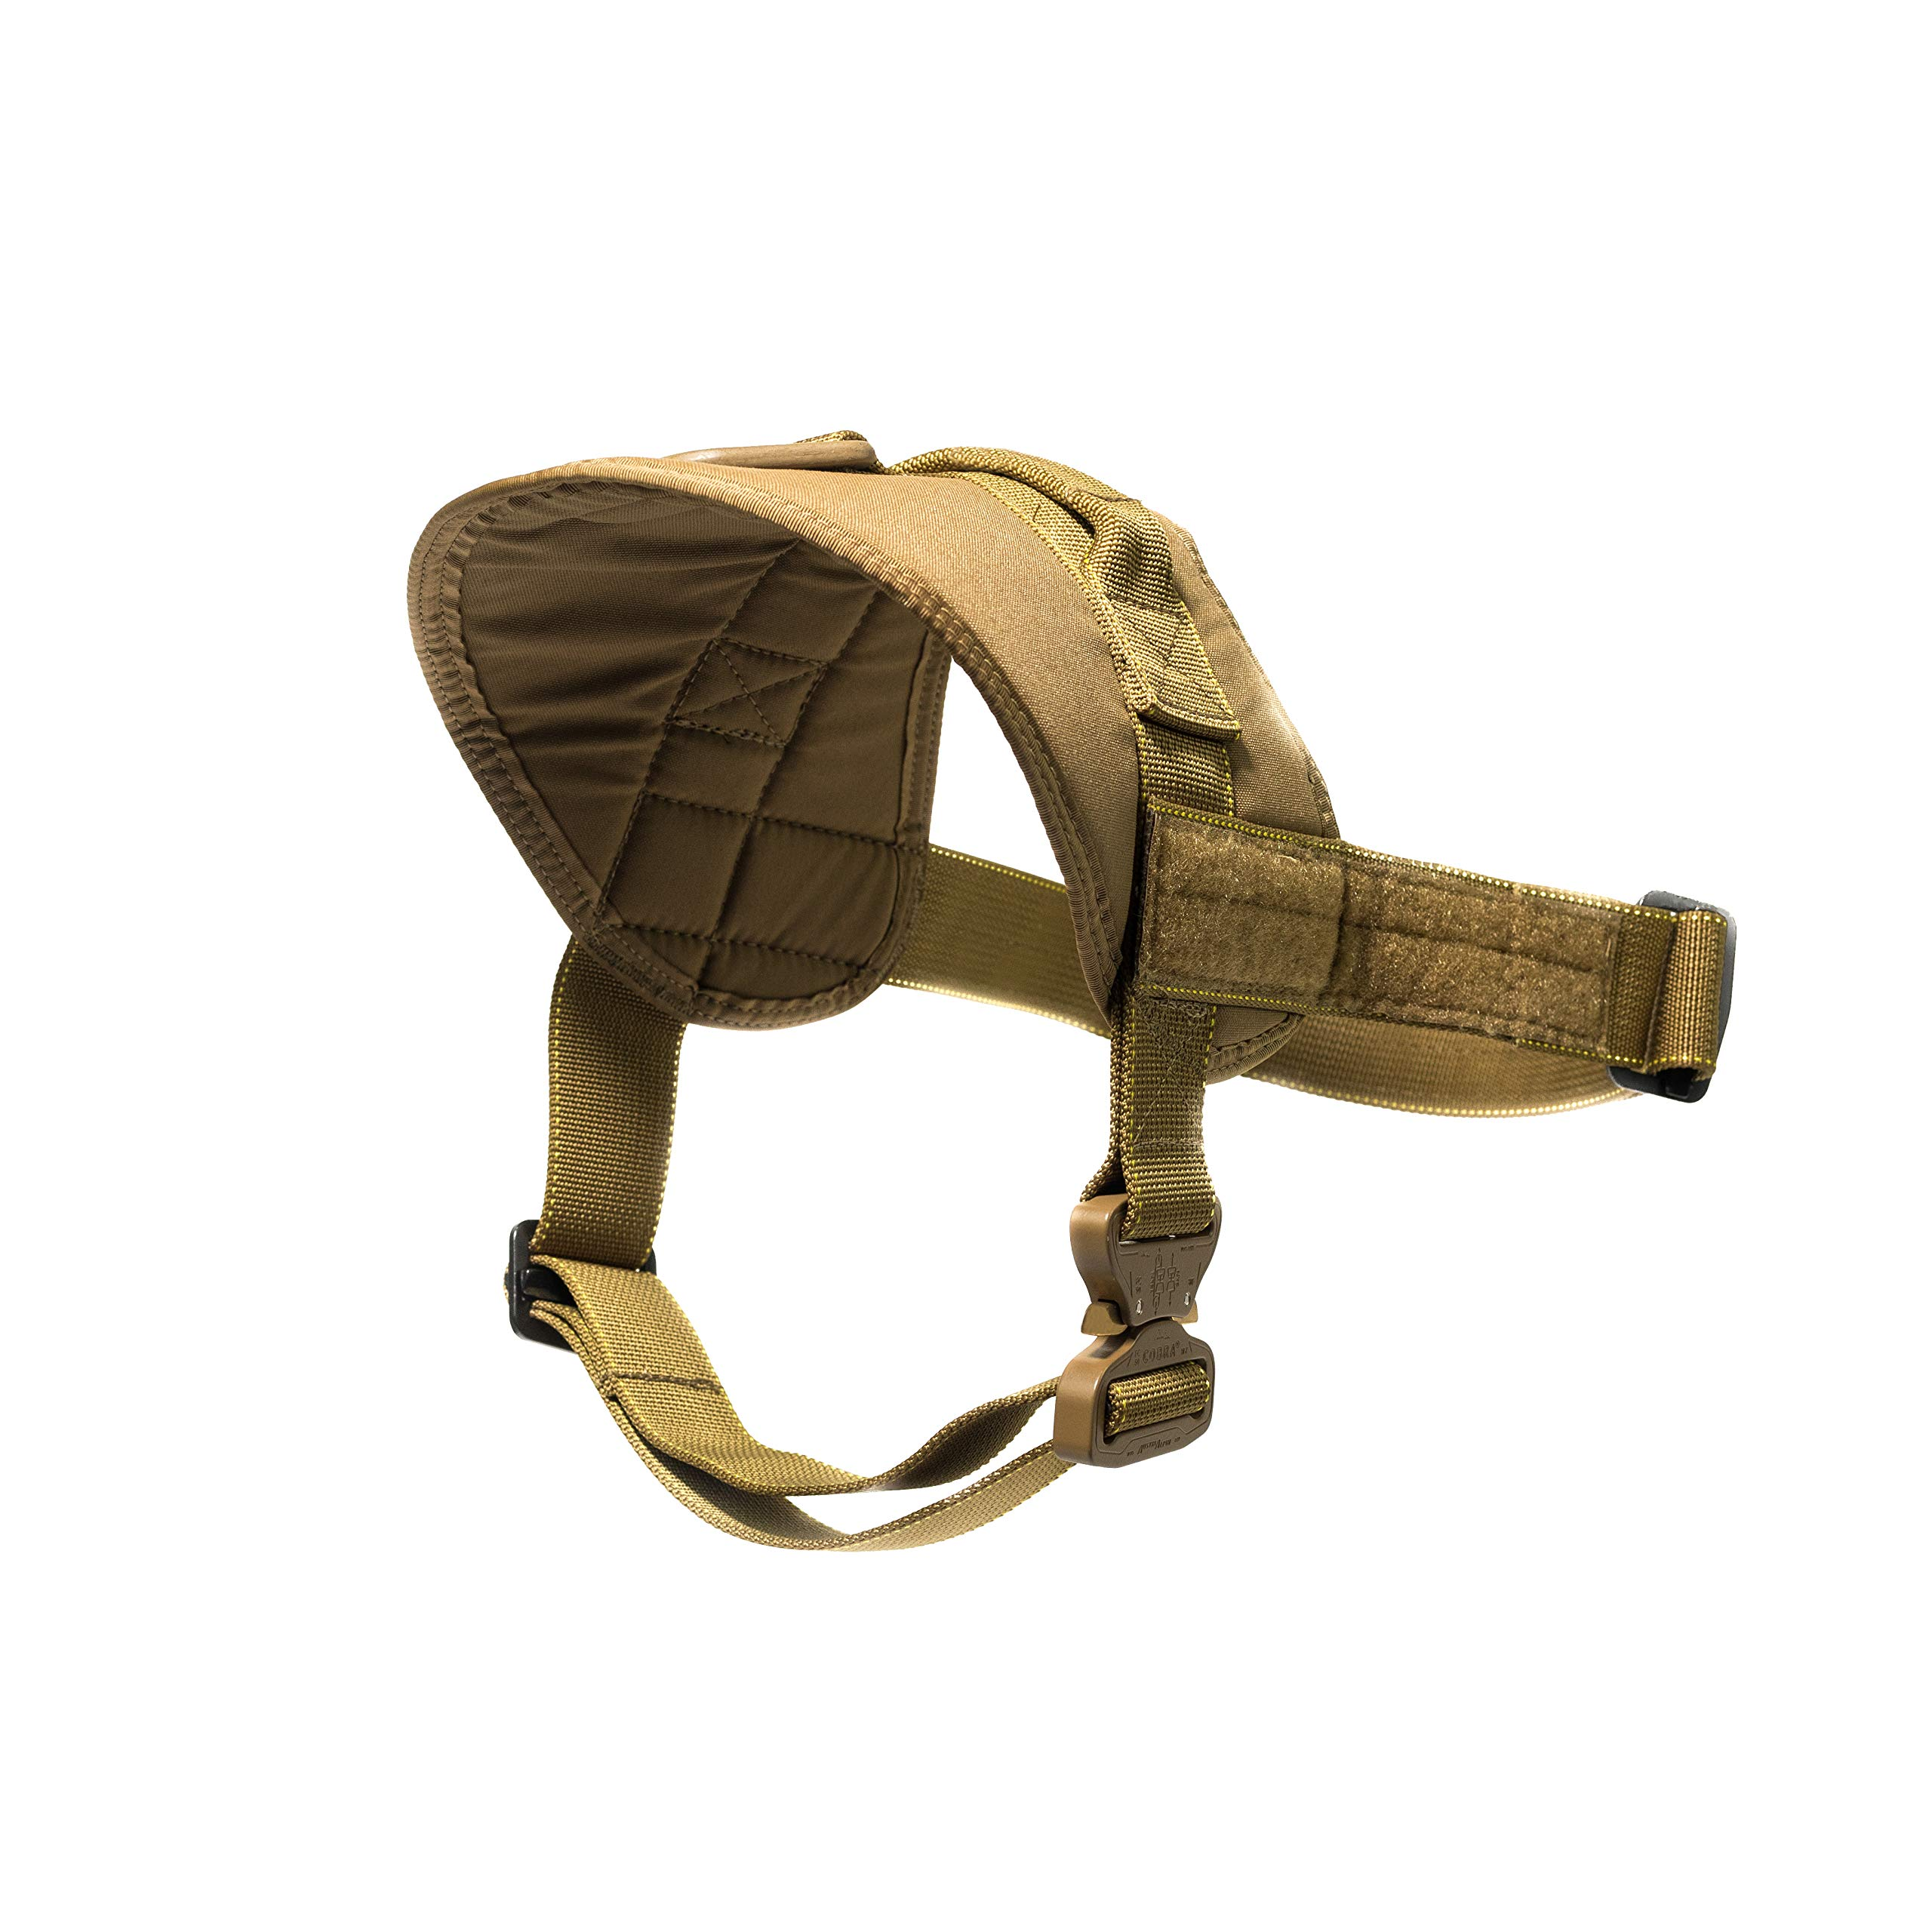 T3 K9 Quick Harness, Coyote Tan